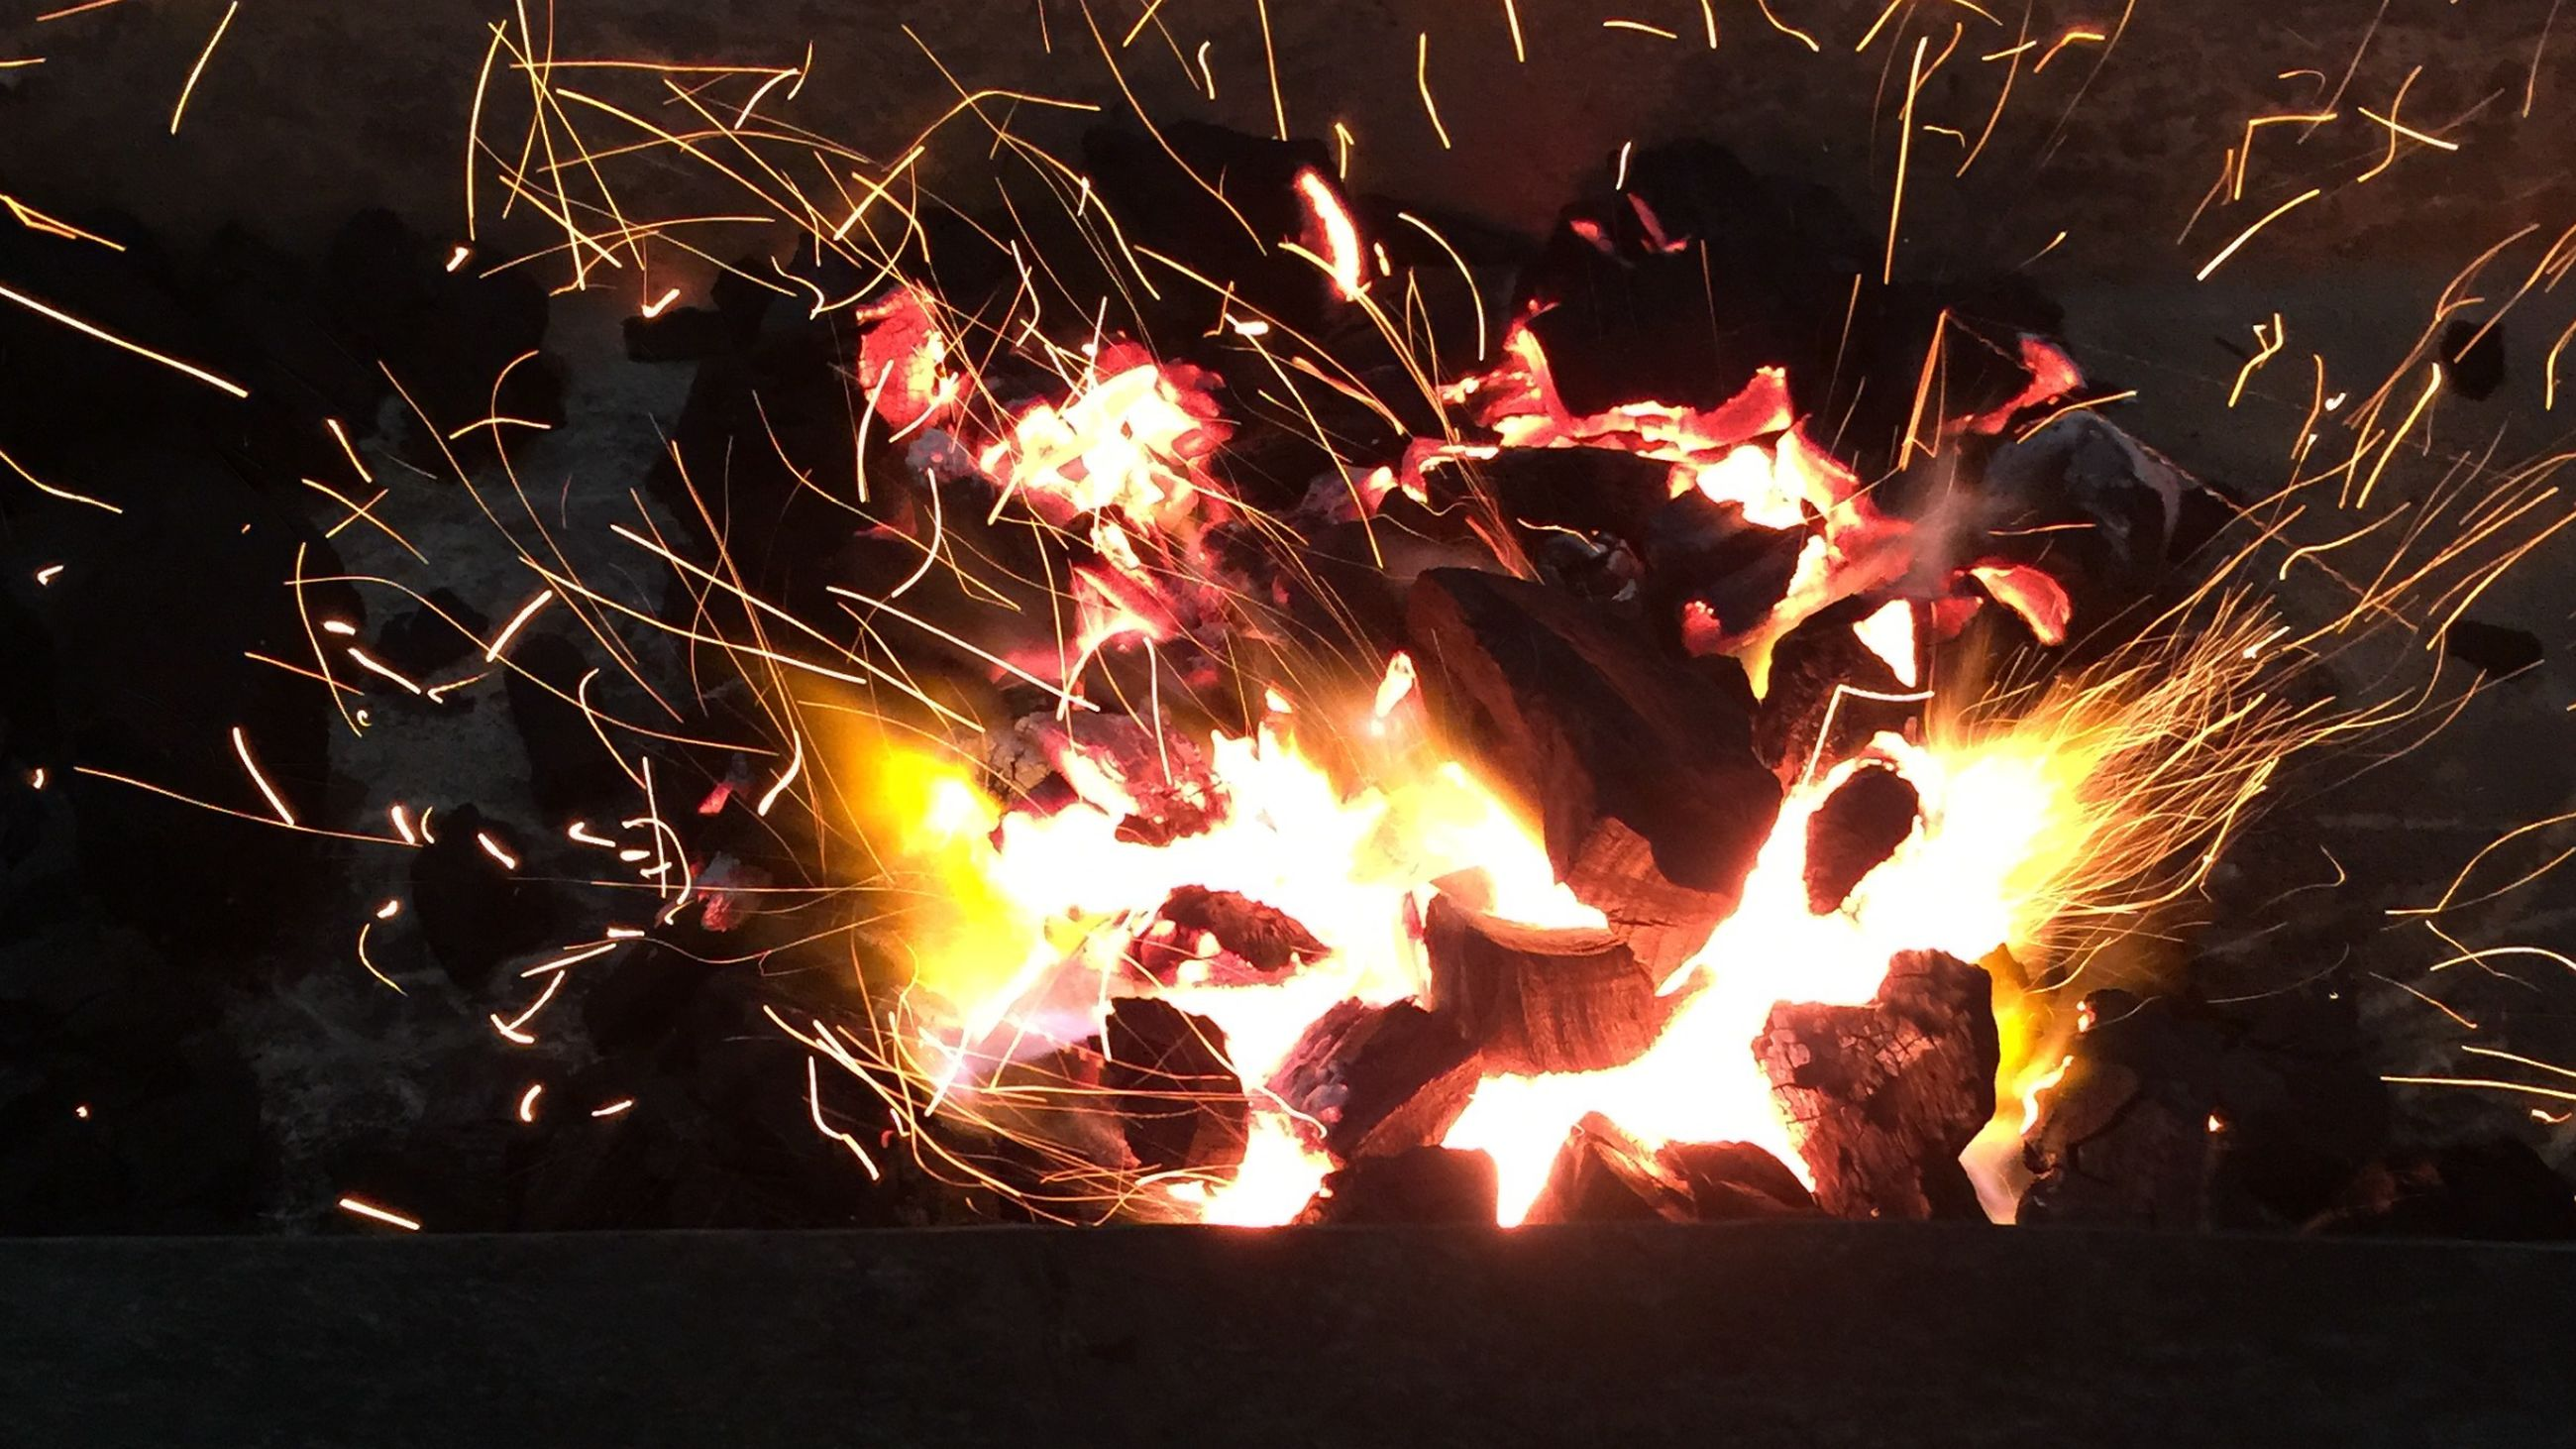 night, illuminated, glowing, fire - natural phenomenon, burning, celebration, motion, flame, long exposure, heat - temperature, firework display, bonfire, dark, sparks, firework - man made object, exploding, orange color, outdoors, light - natural phenomenon, arts culture and entertainment